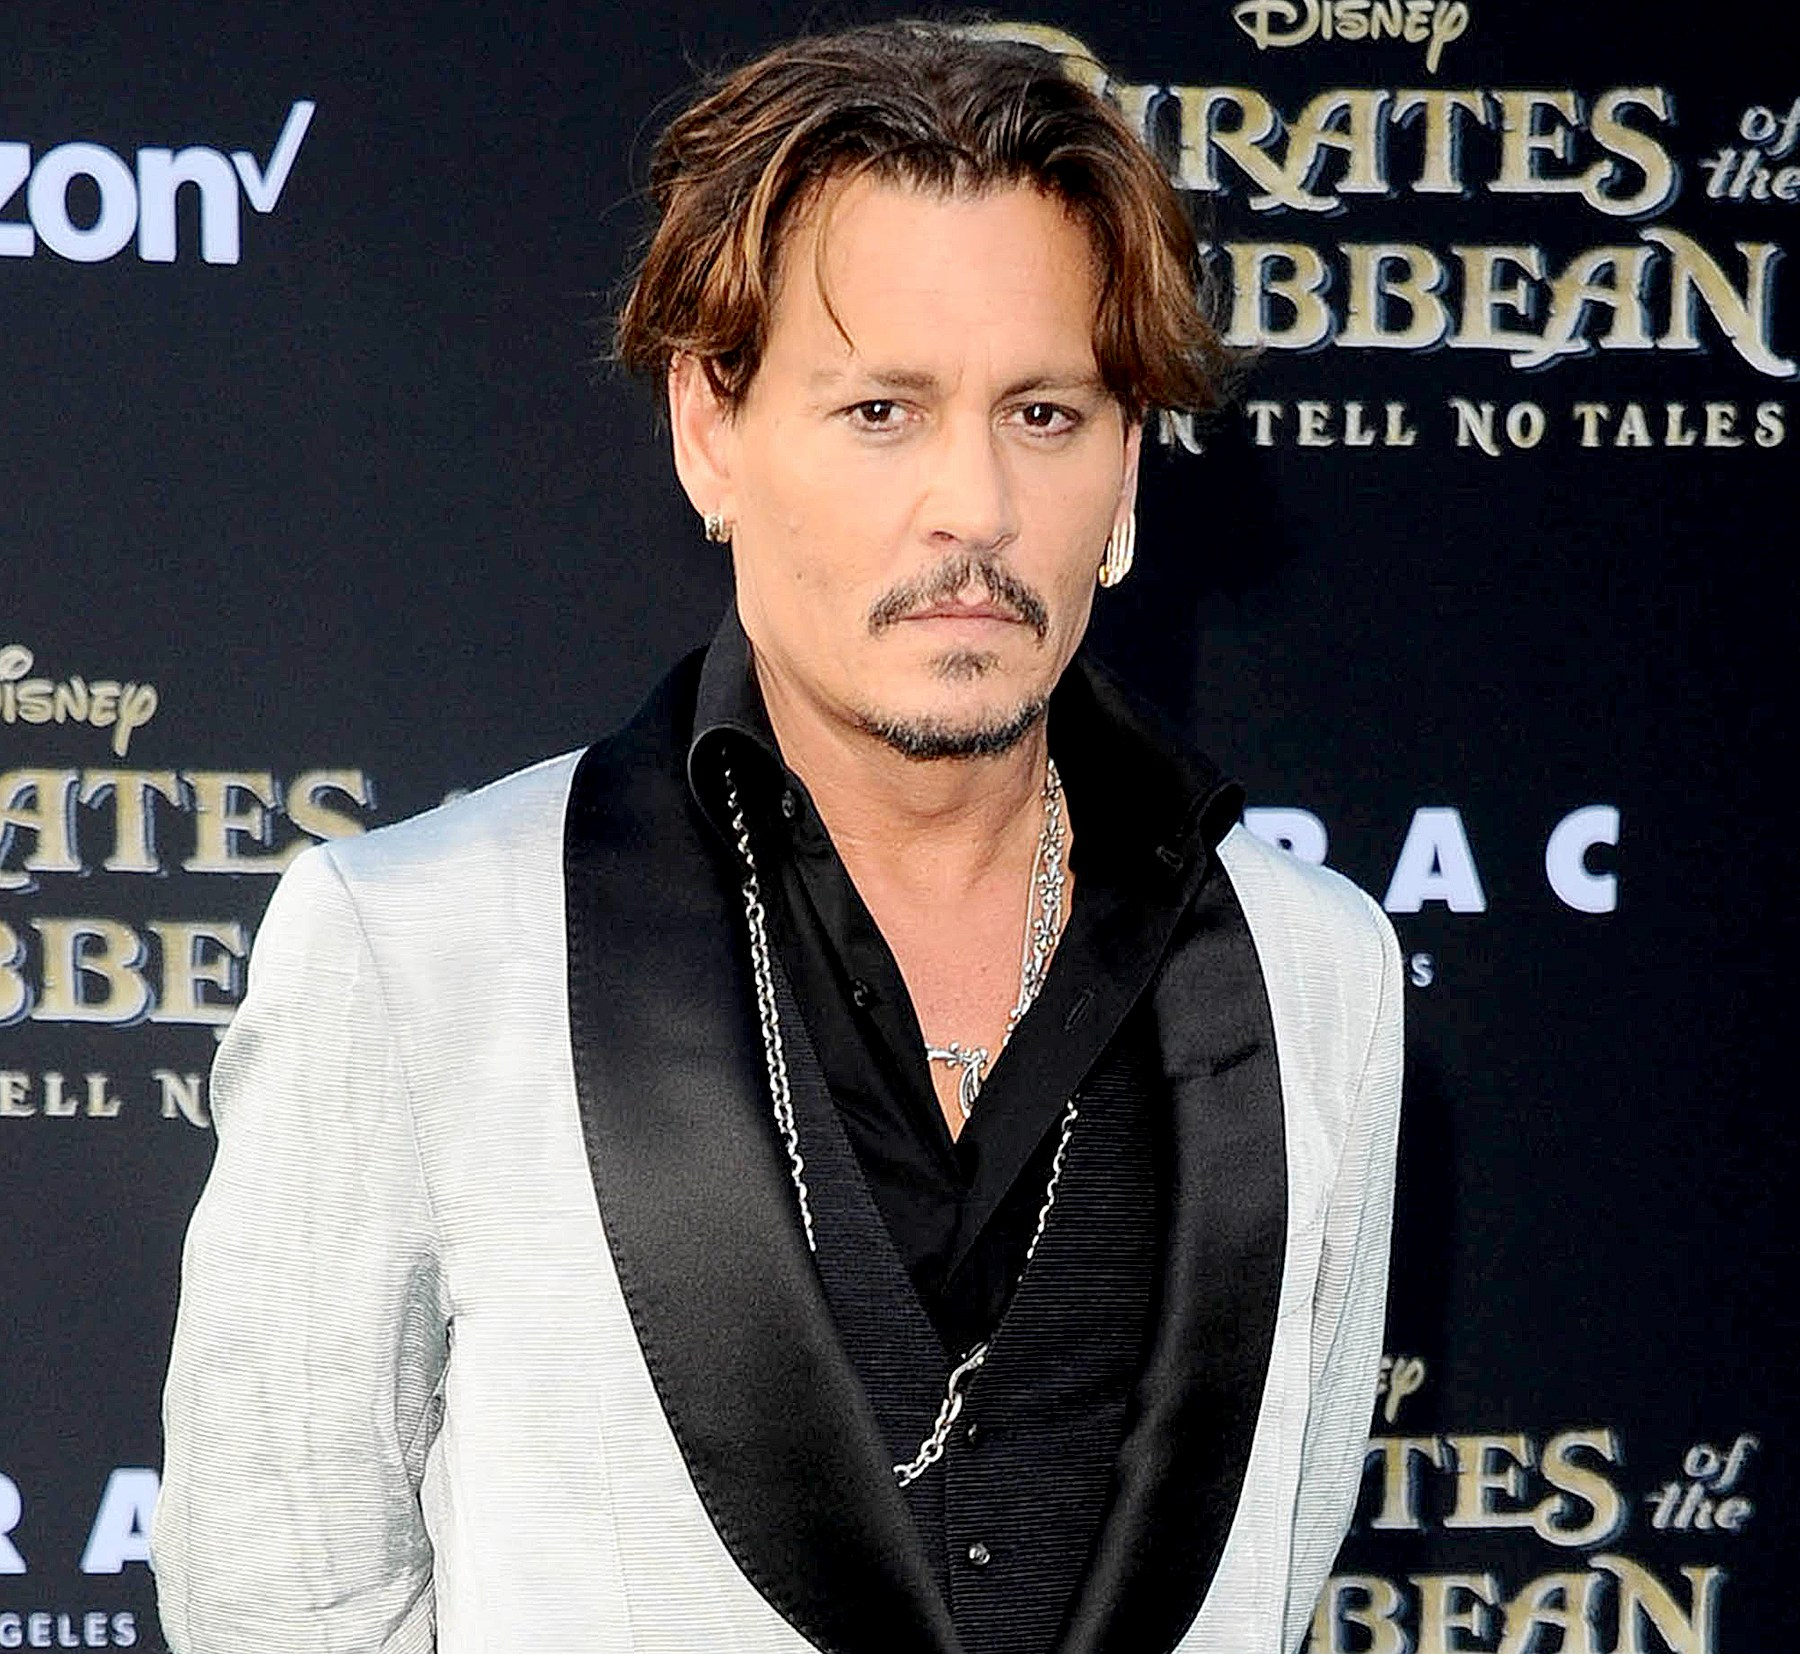 Johnny-Depp-Sued-for-Allegedly-Attacking-Crew-Member